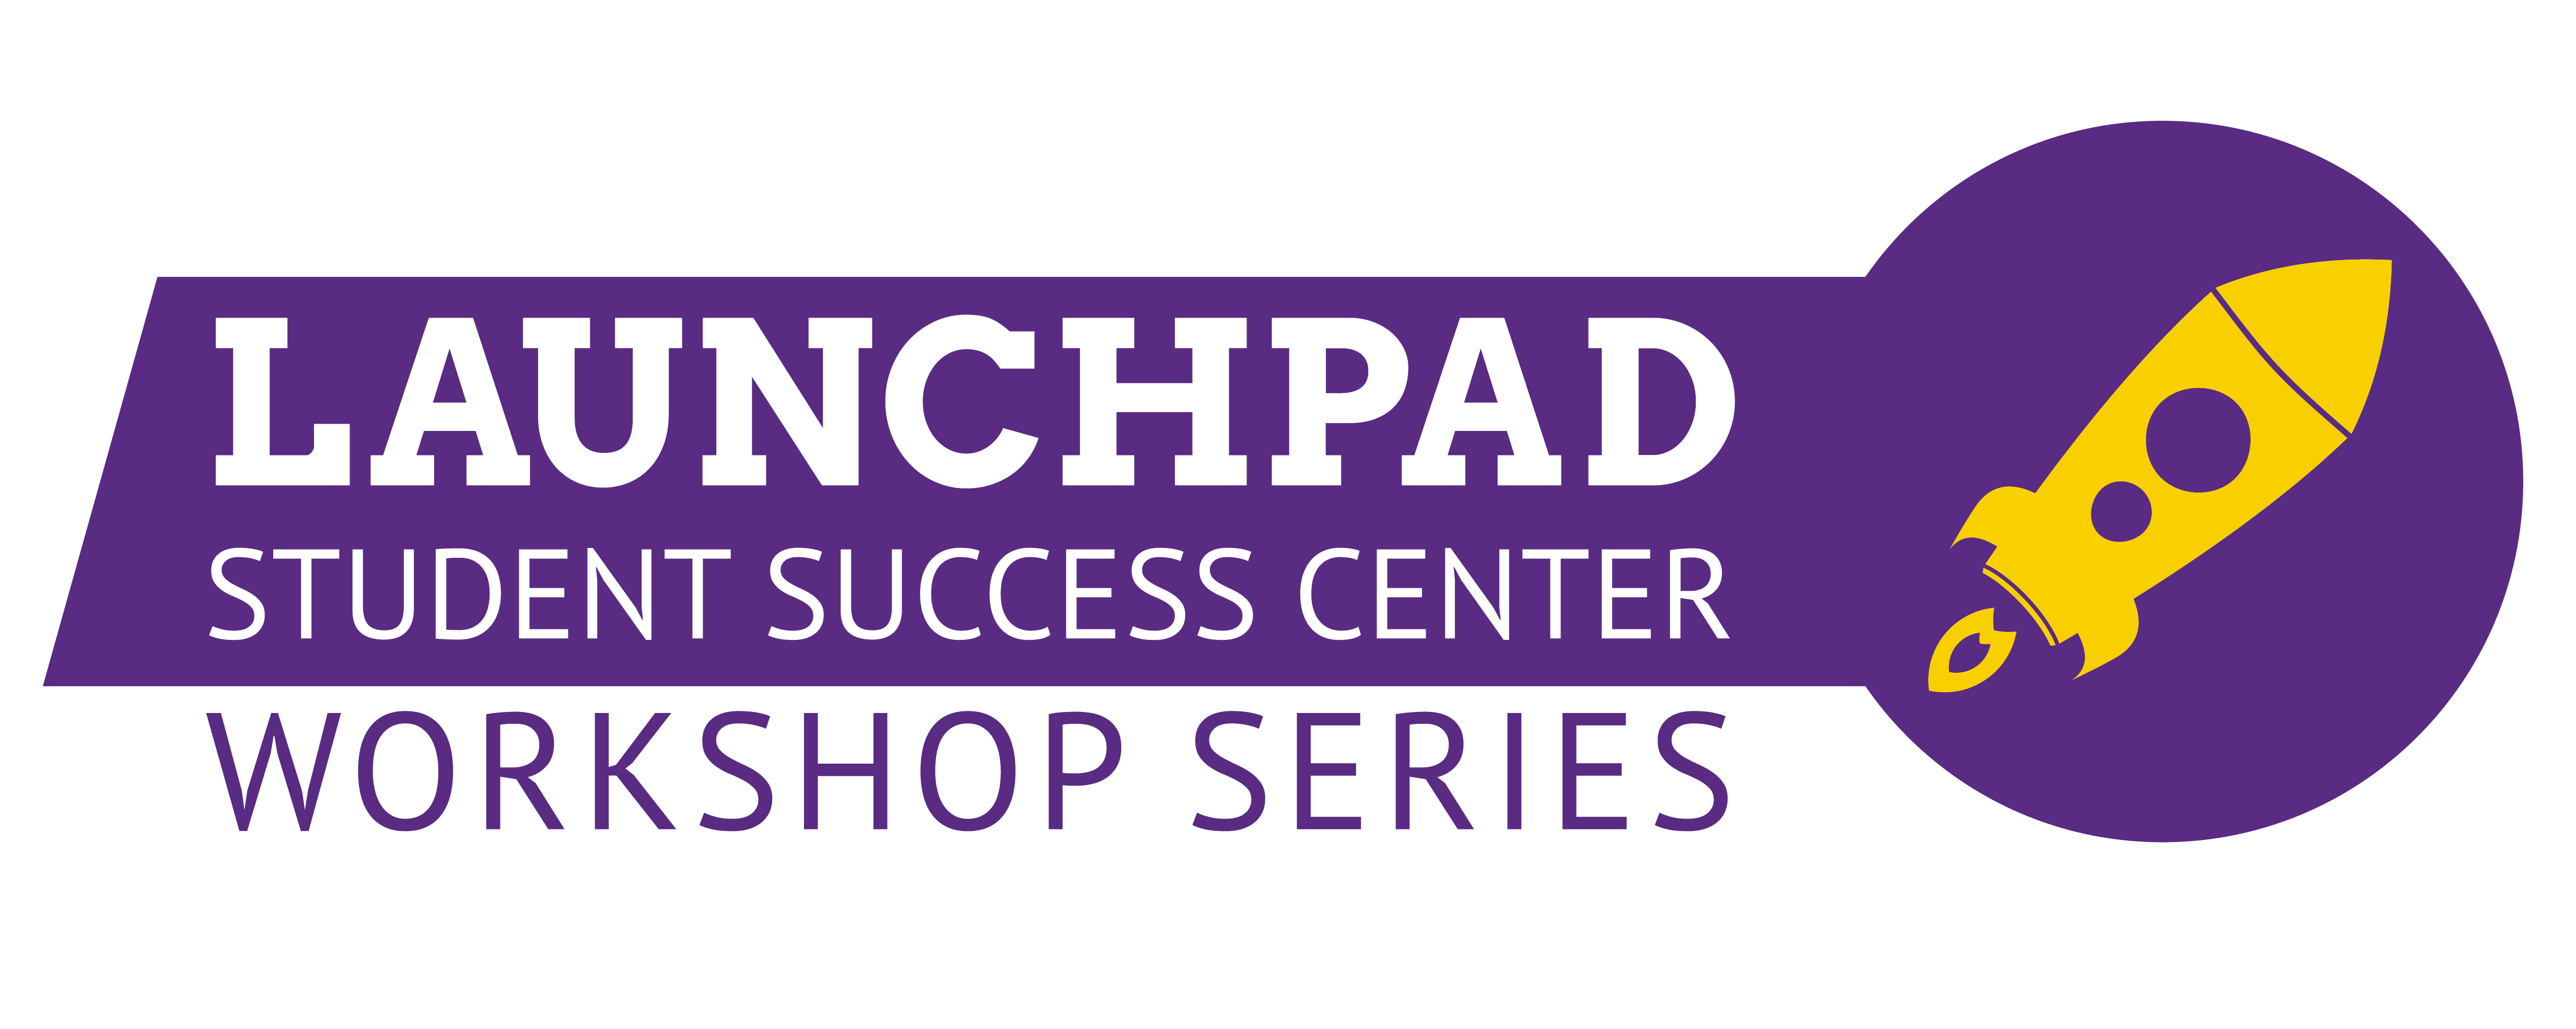 Image of the Launchpad Student Success Center workshop series logo with rocket.